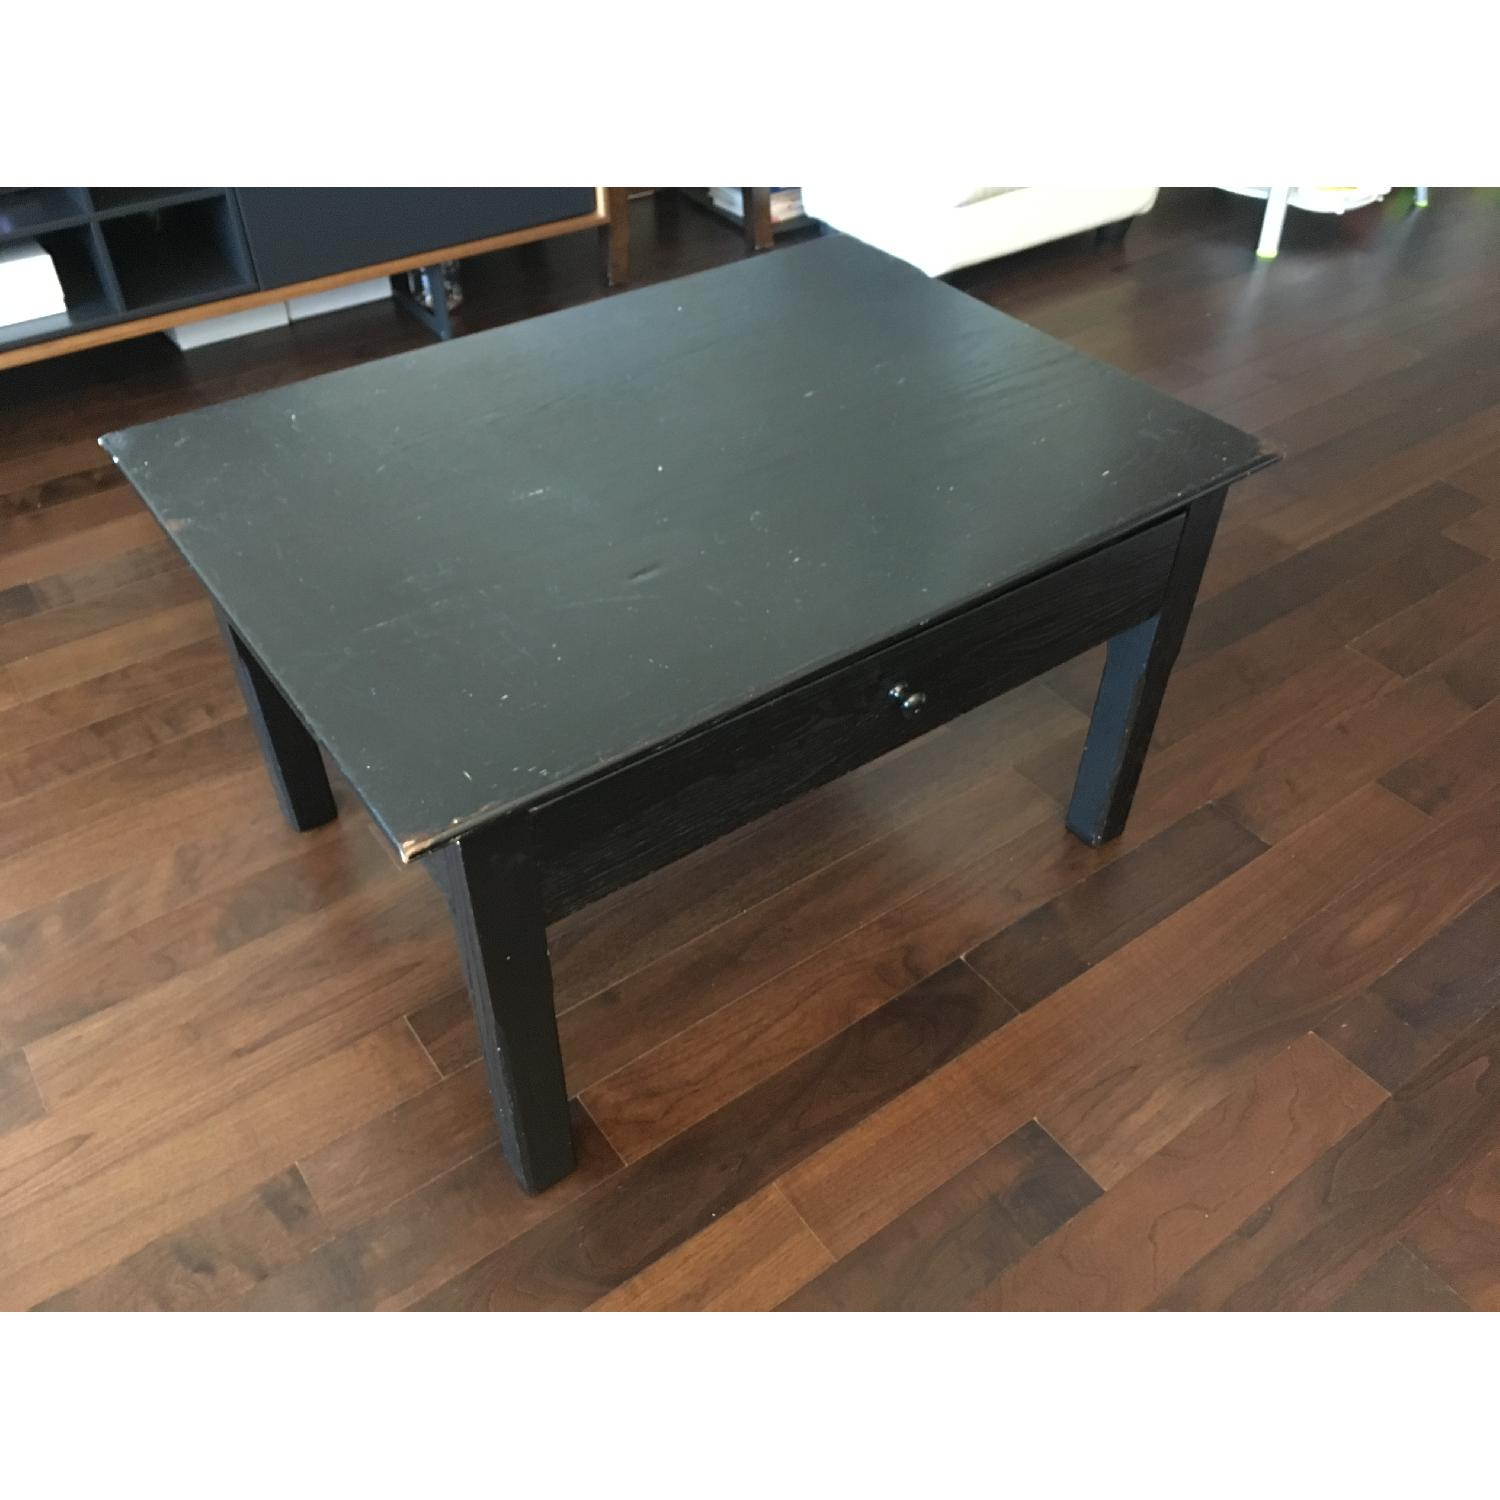 Pottery Barn Black Coffee Table w/ 1 Drawer